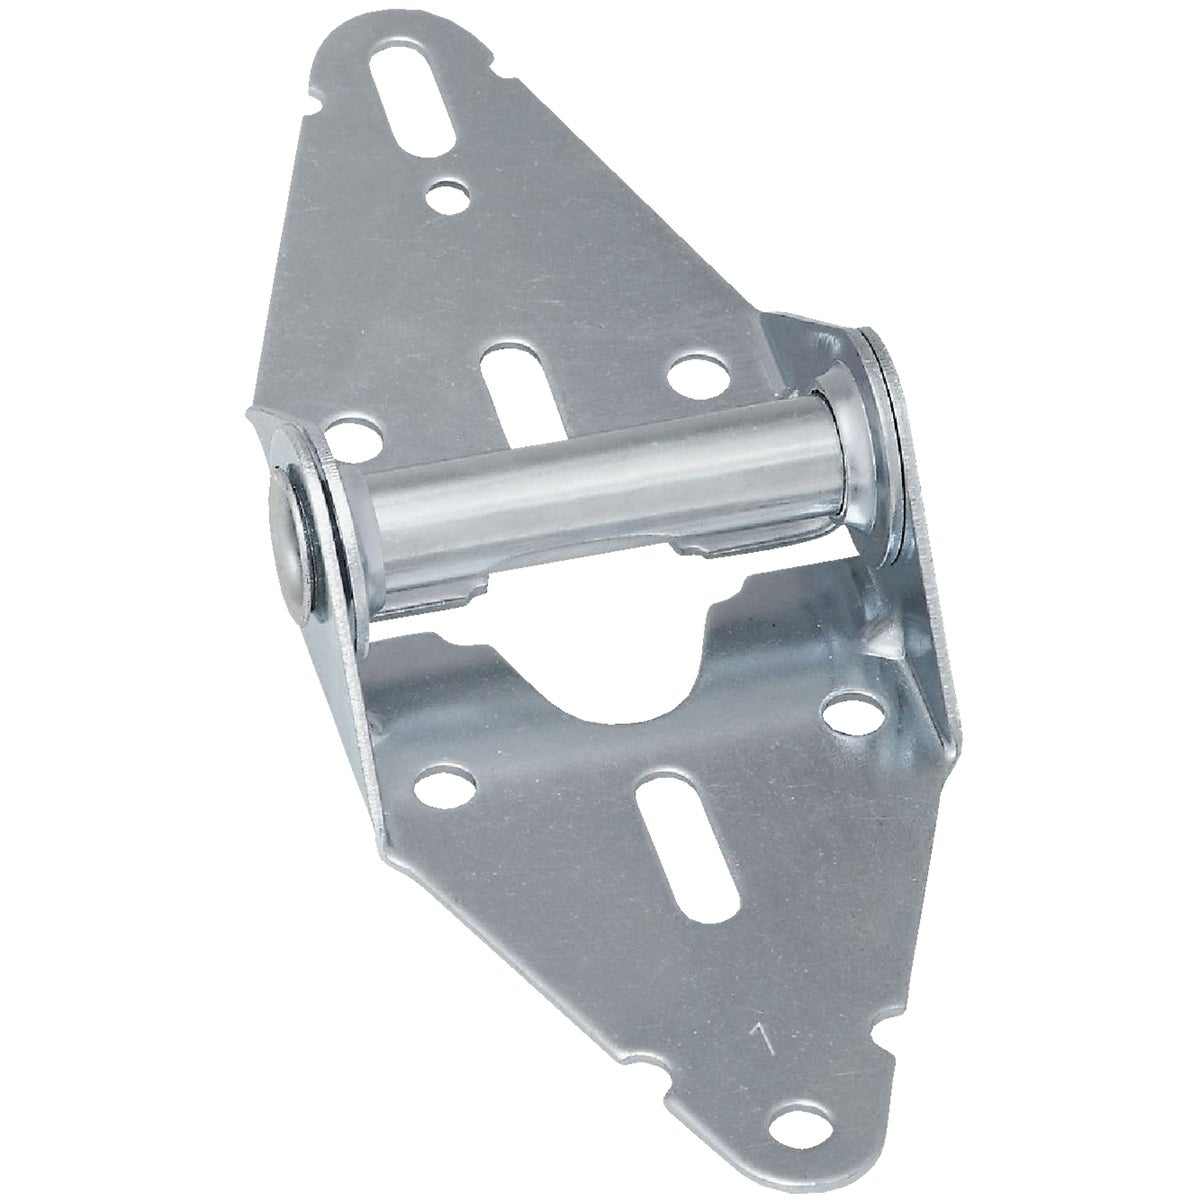 #1 HINGE W/BOLTS&NUTS - N280156 by National Mfg Co